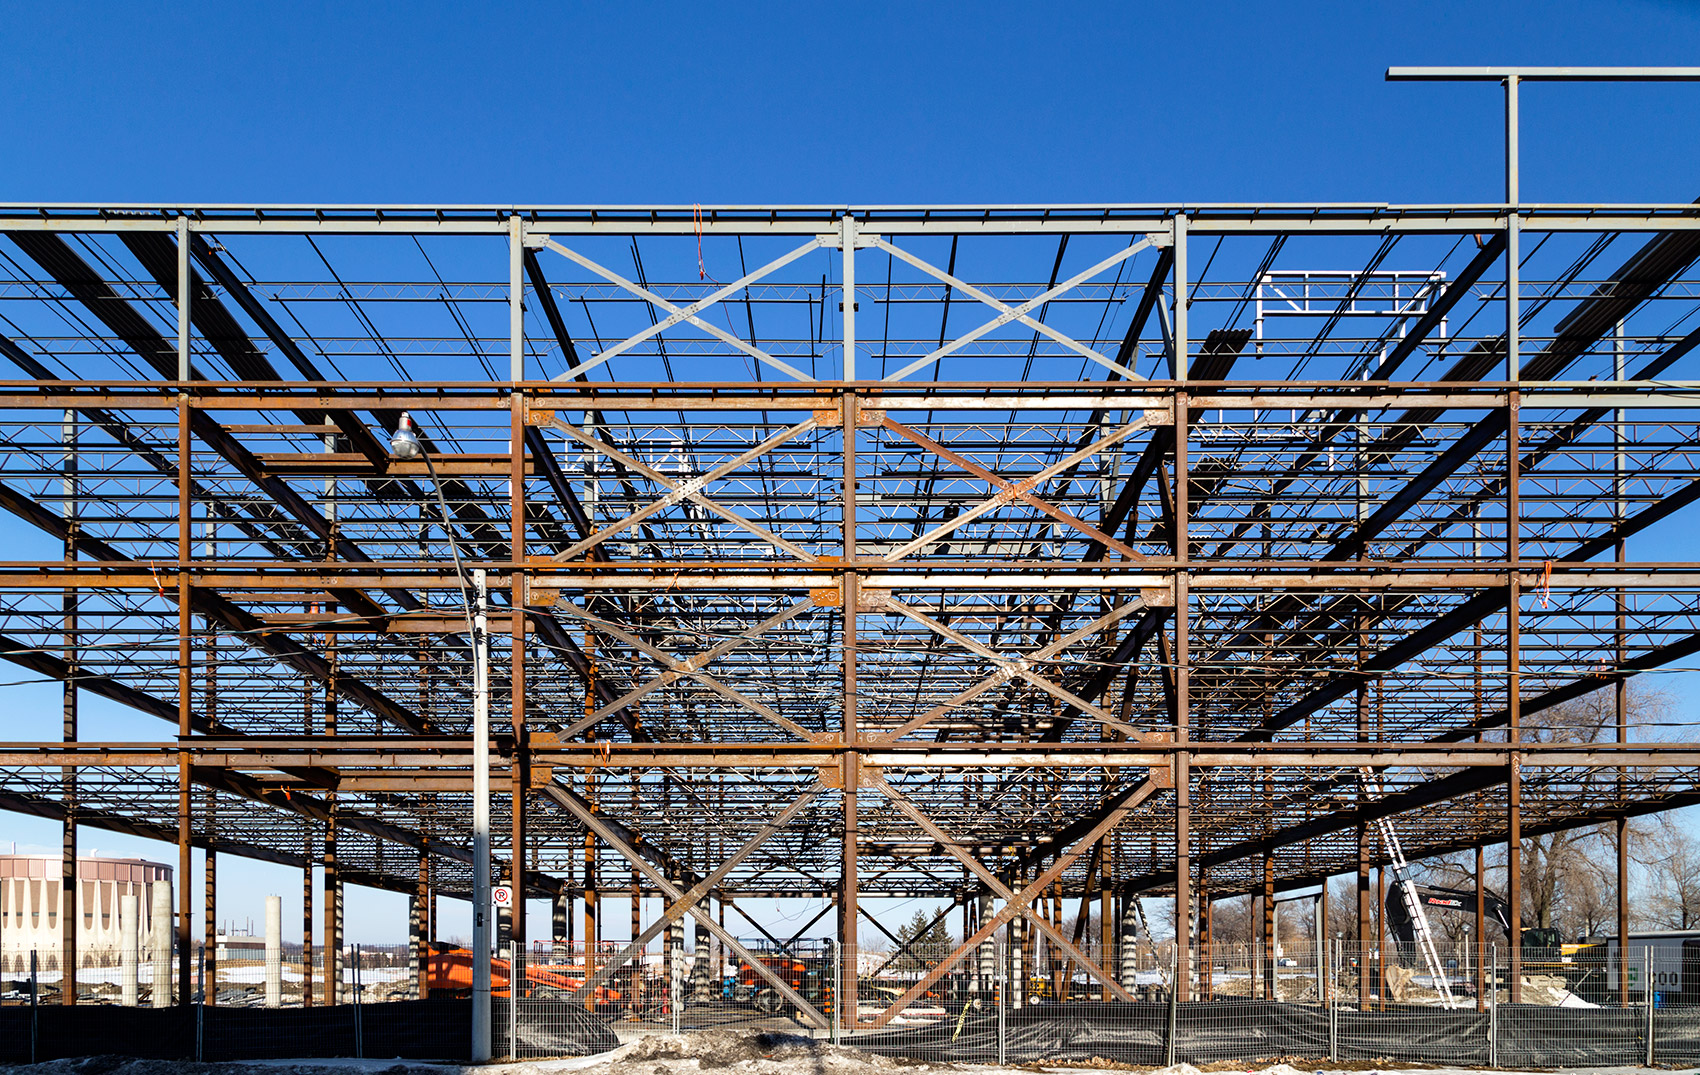 20150309. The skeleton of a self-storage structure sits at a cor